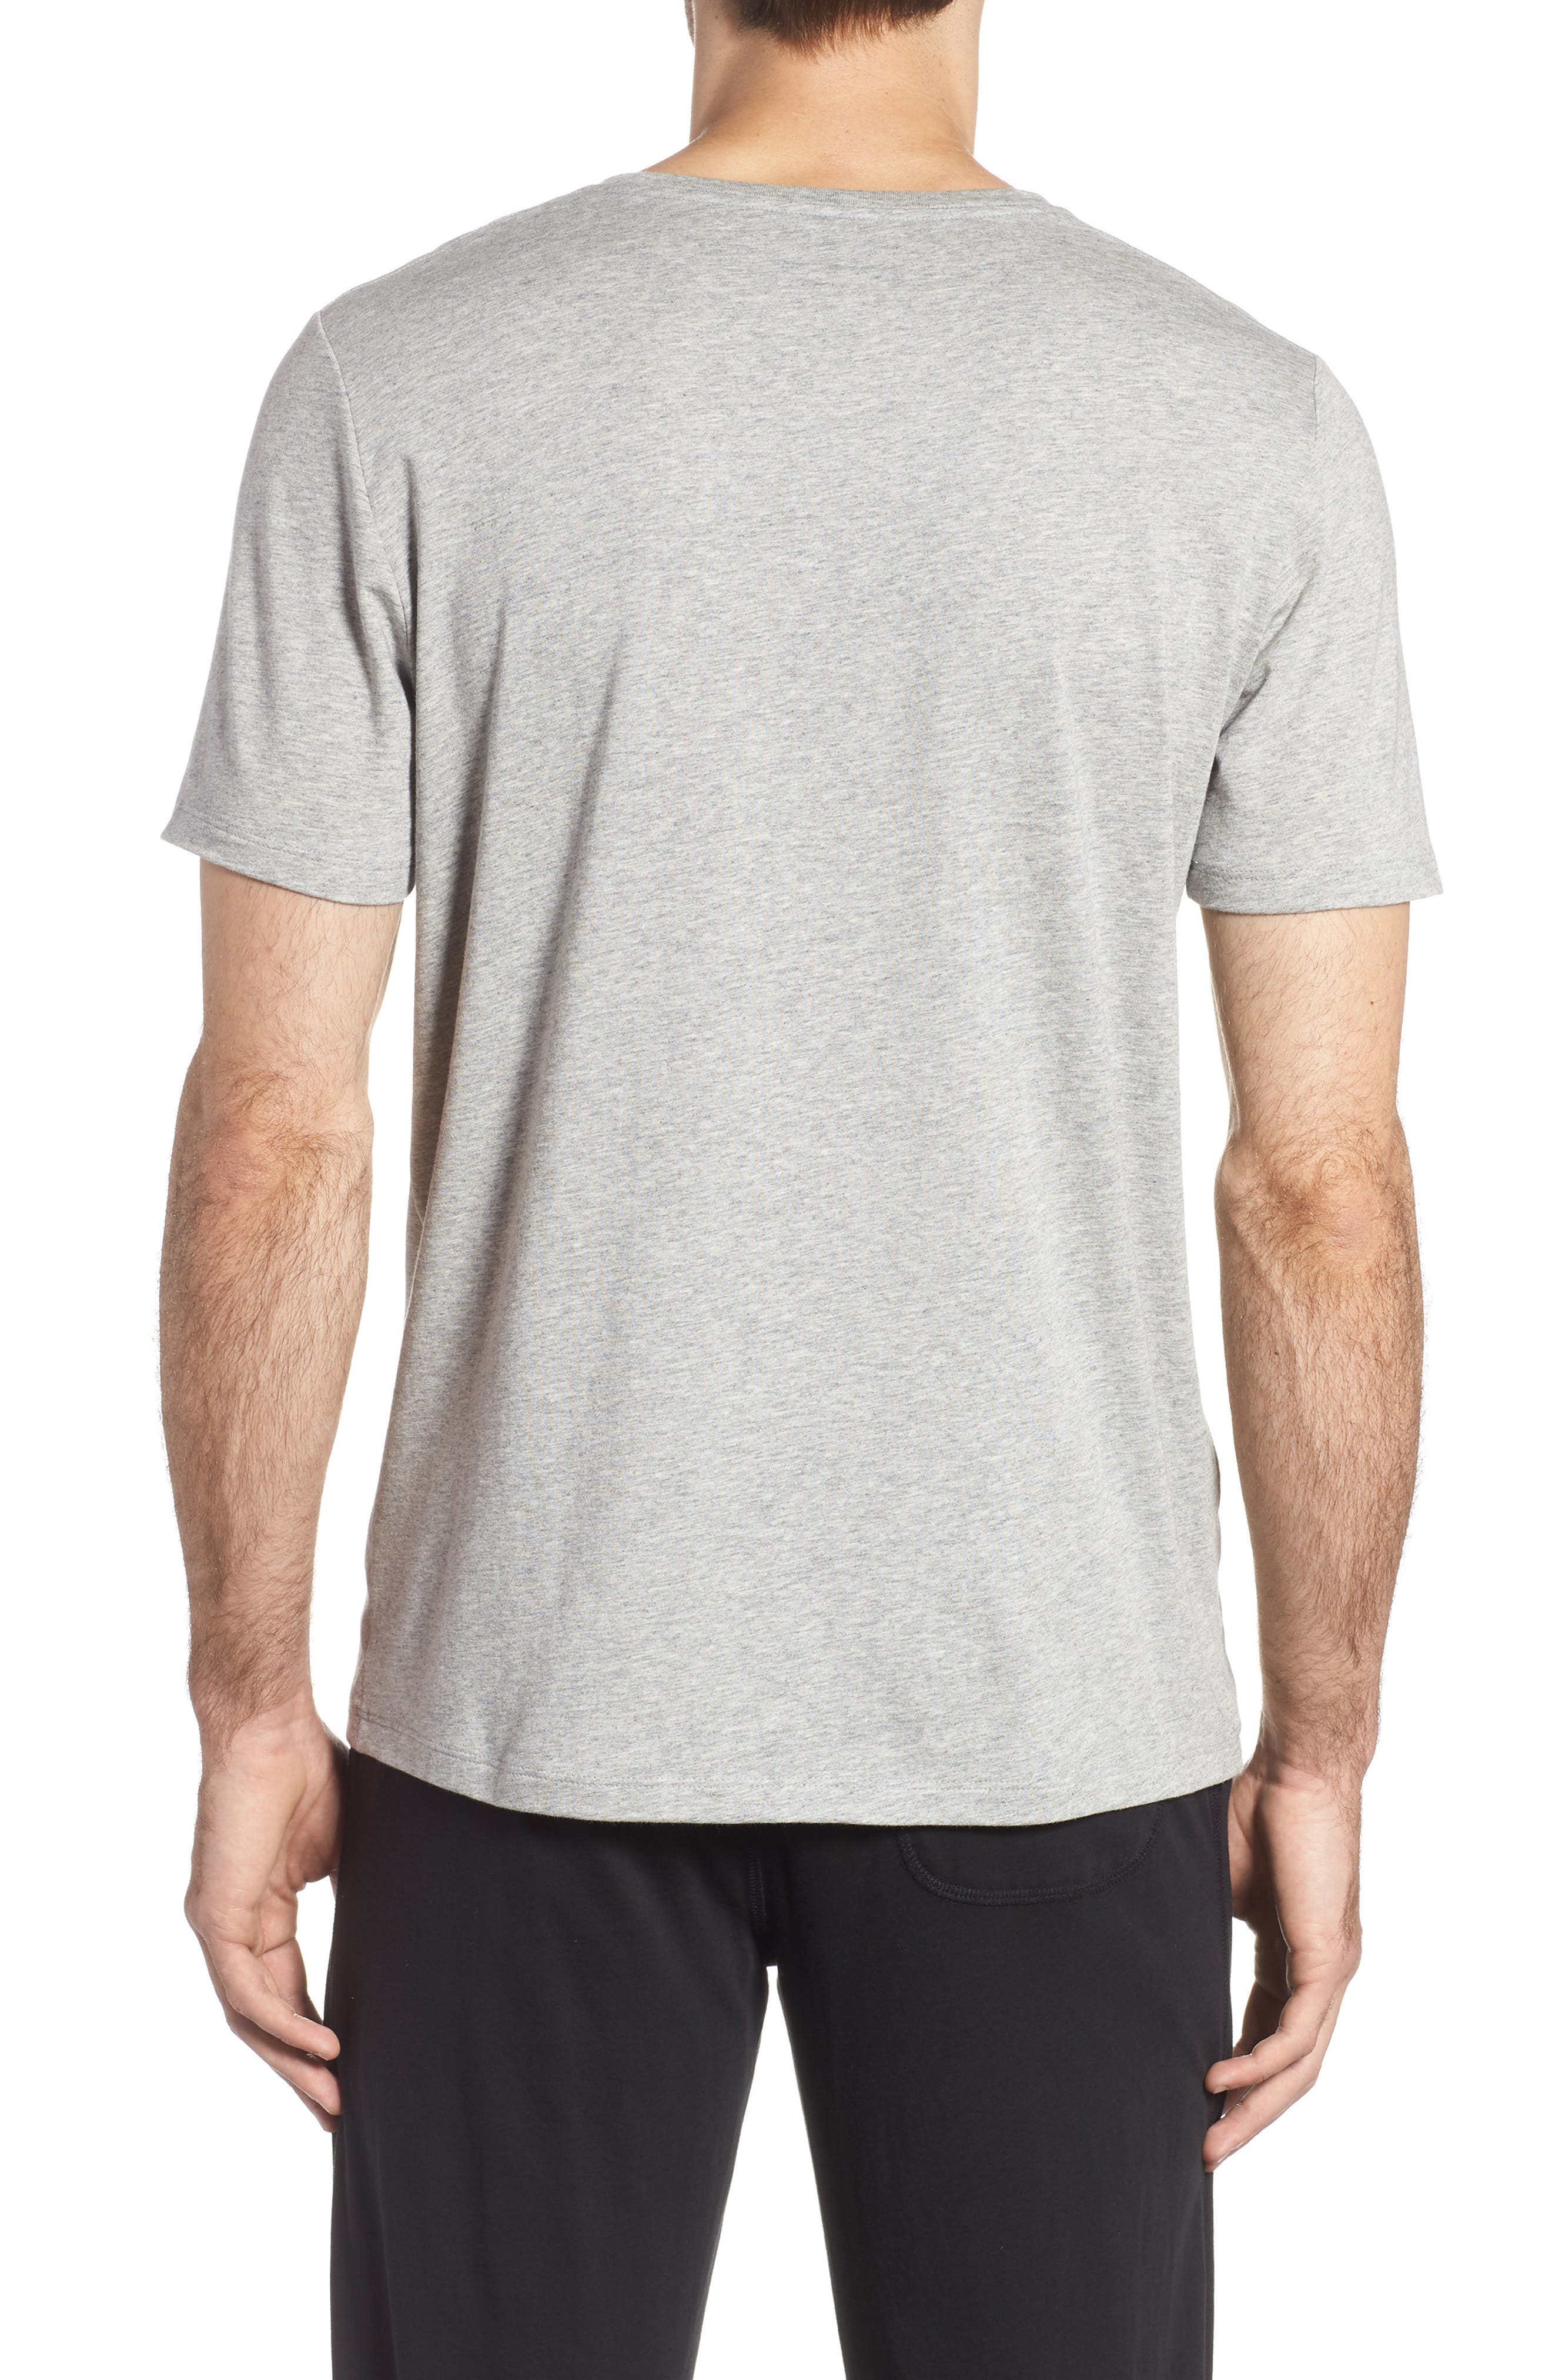 Second Skin V-Neck T-Shirt,                             Alternate thumbnail 2, color,                             HEATHER GREY